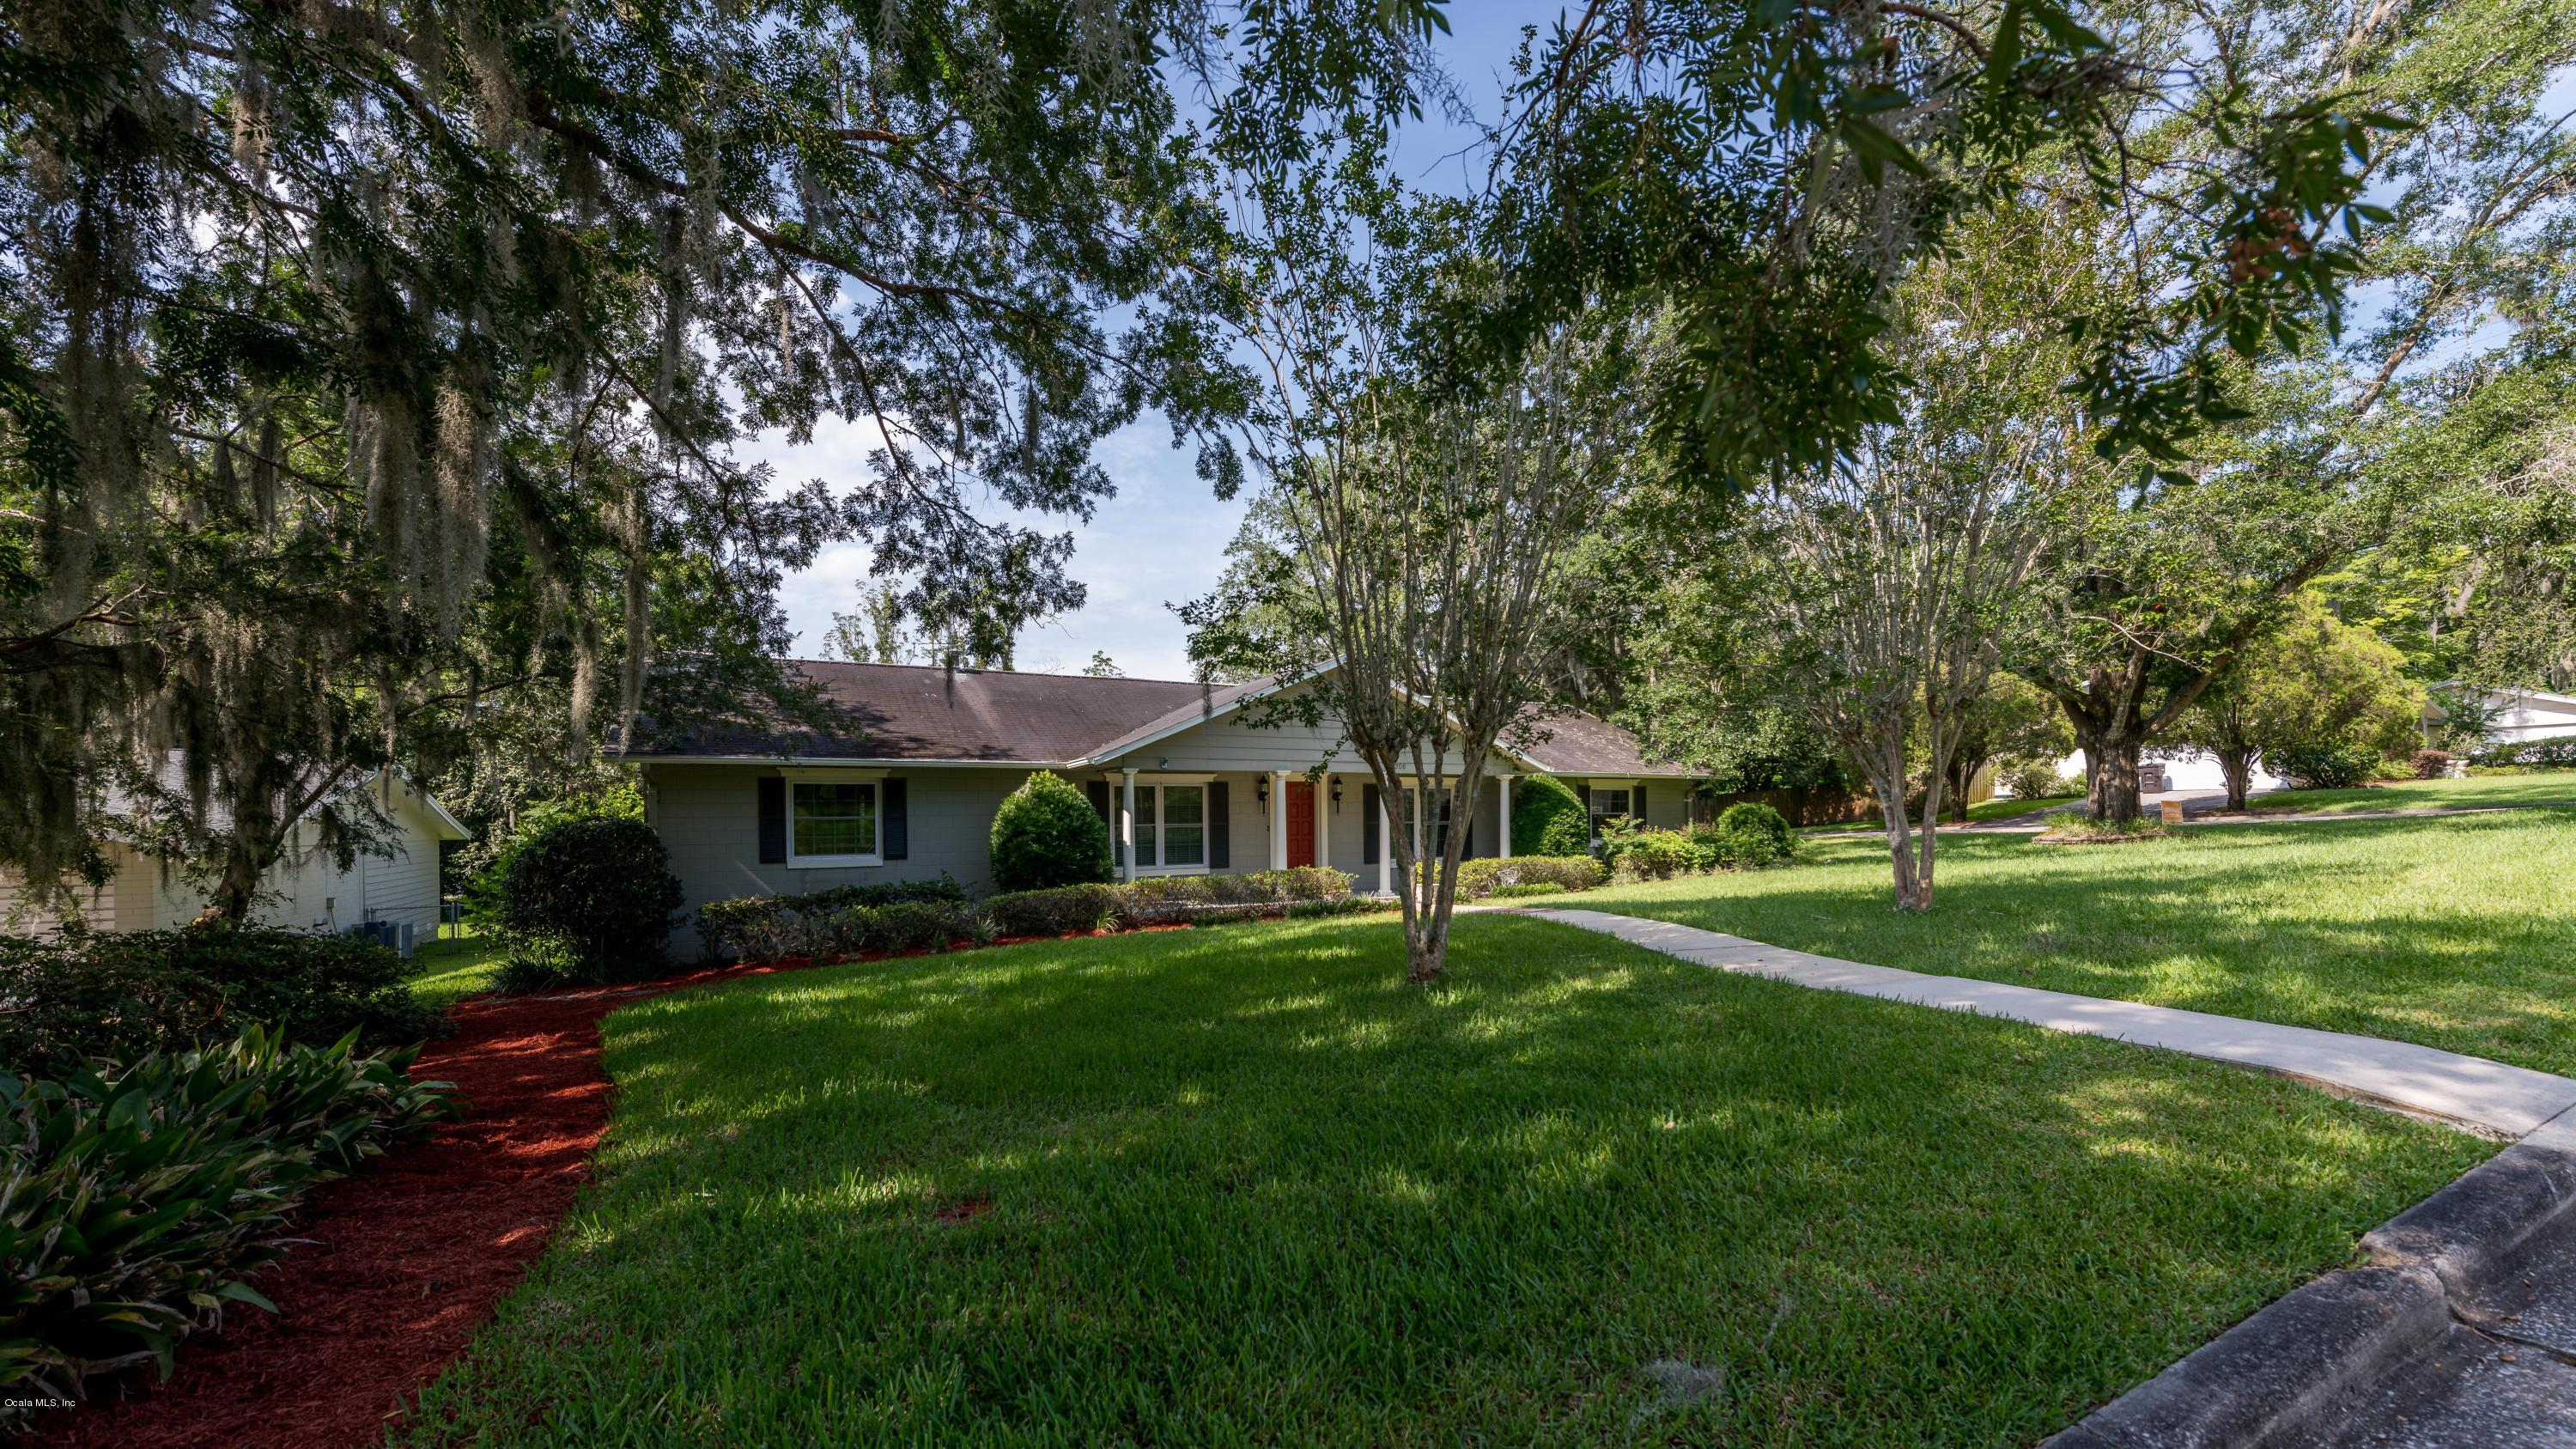 1208 SE 15TH STREET, OCALA, FL 34471